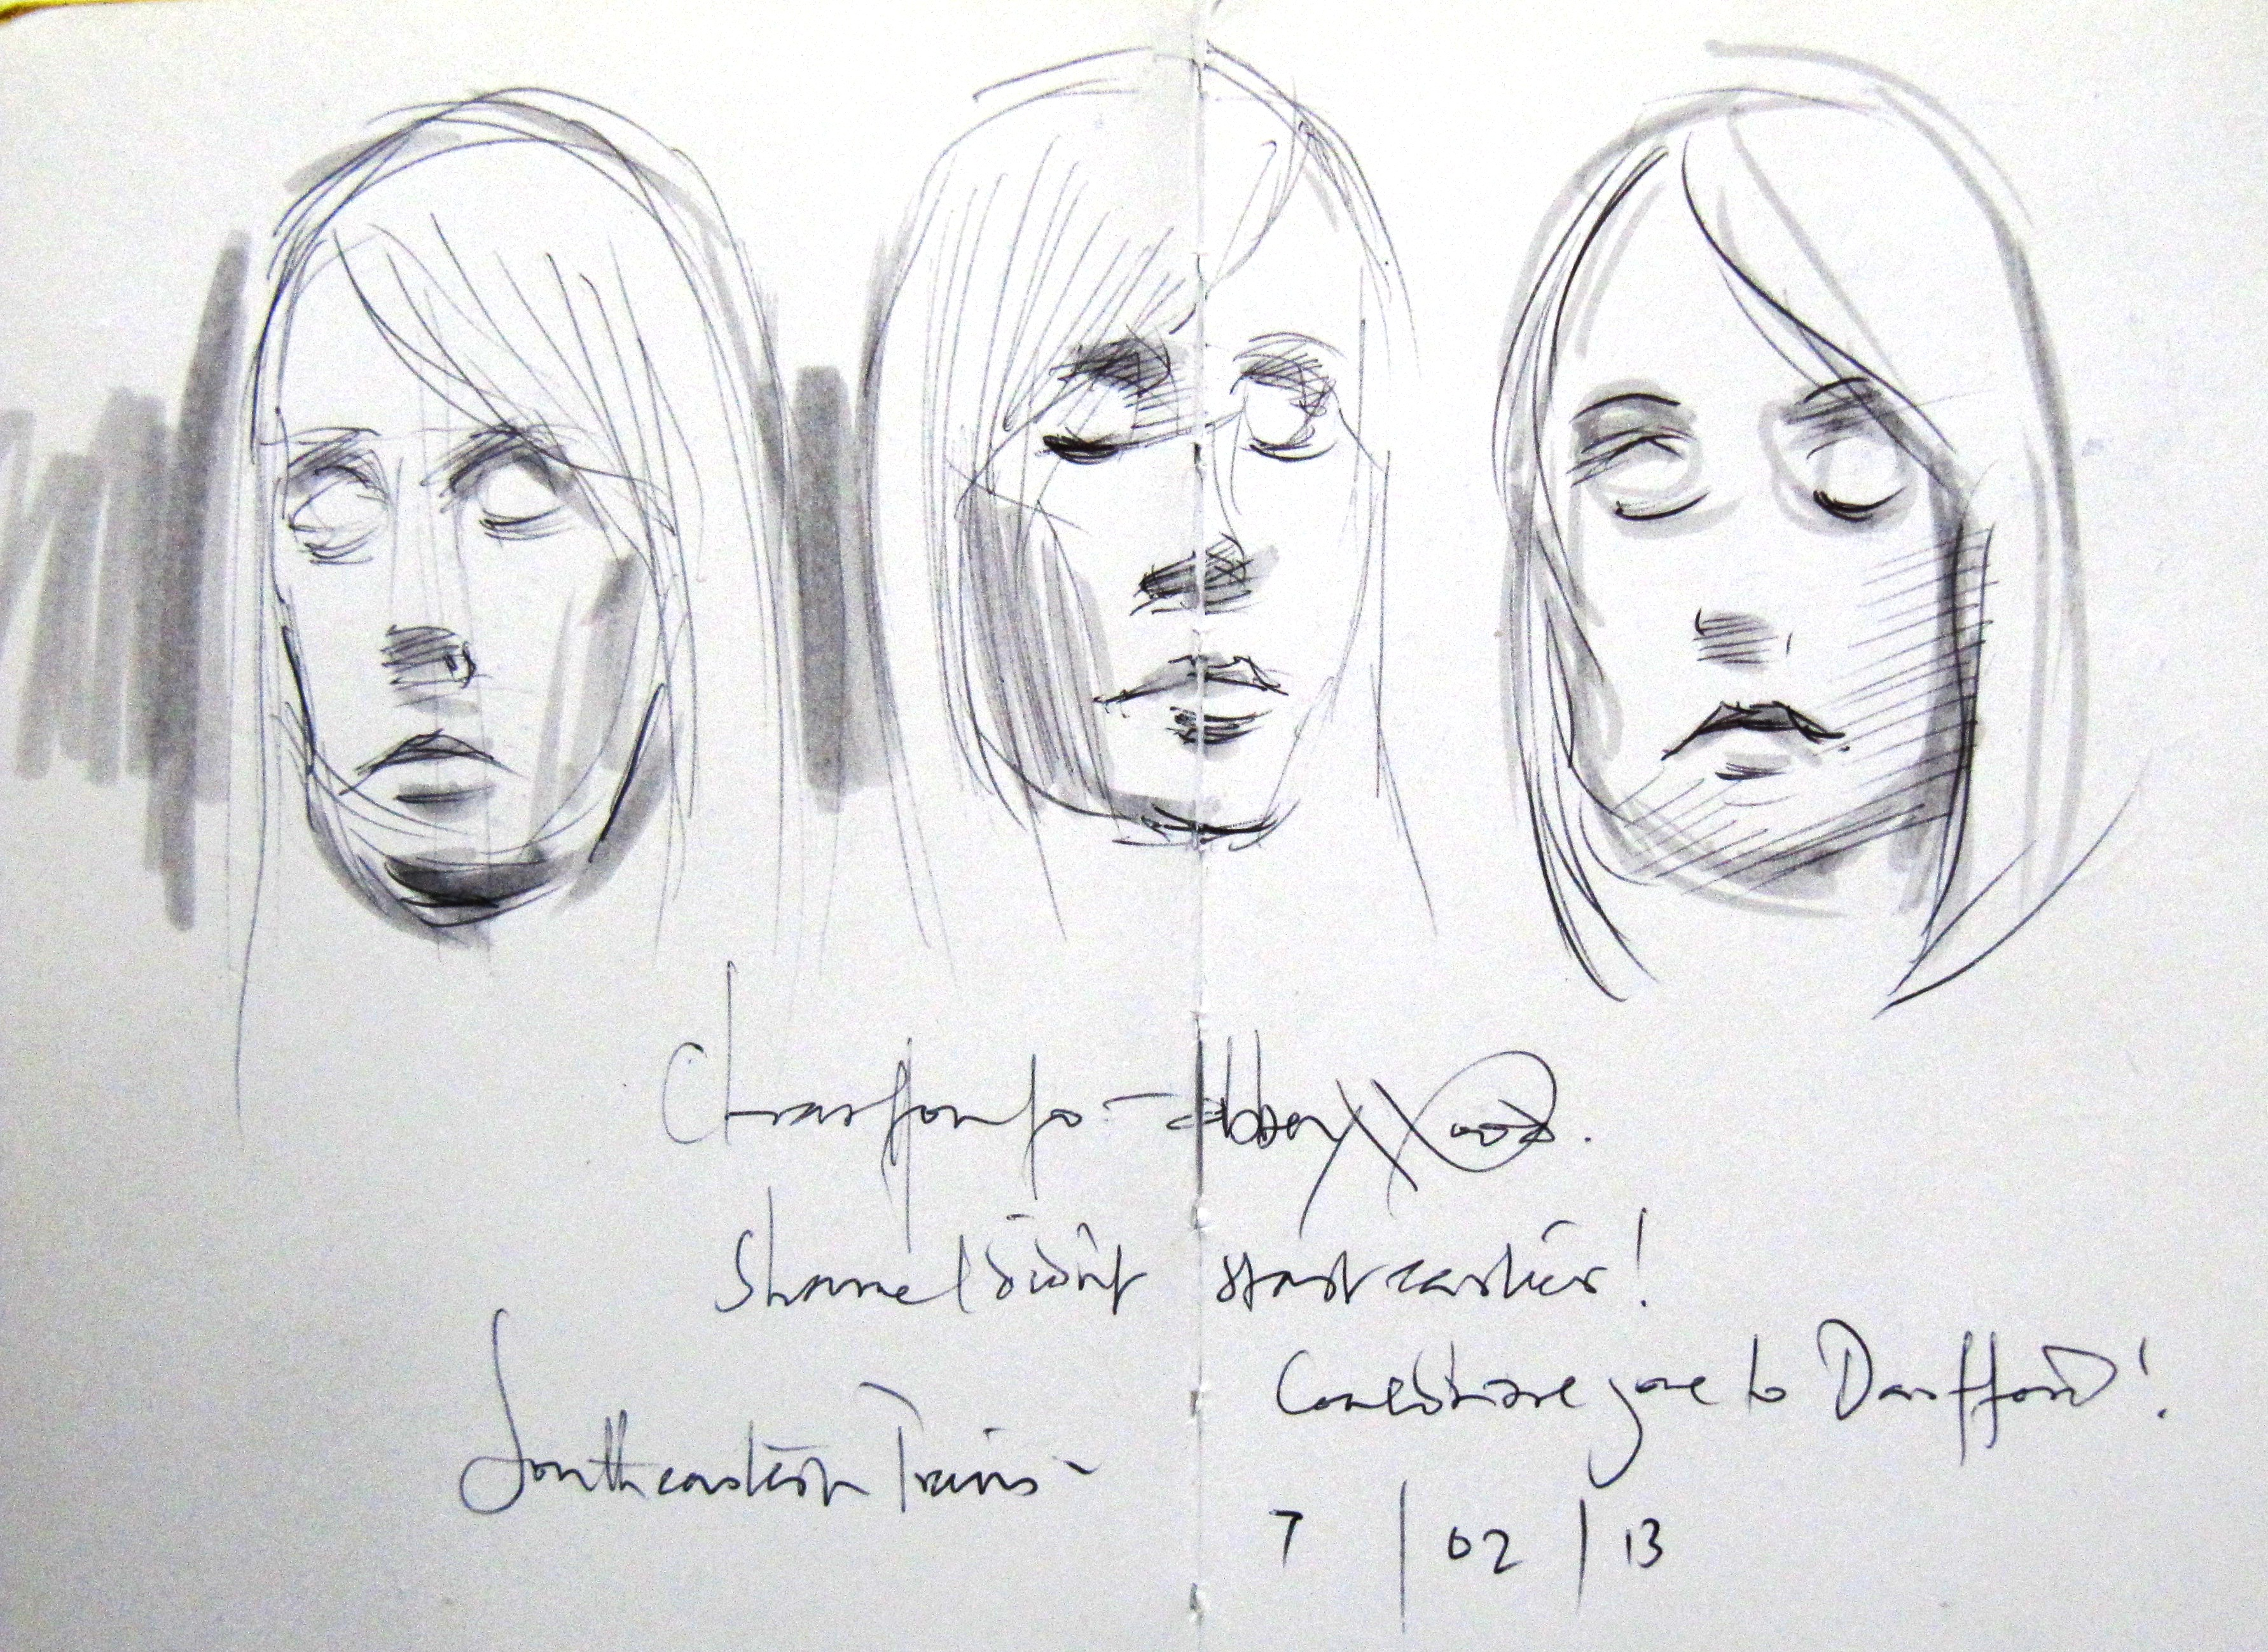 3 sketches of a woman day dreaming